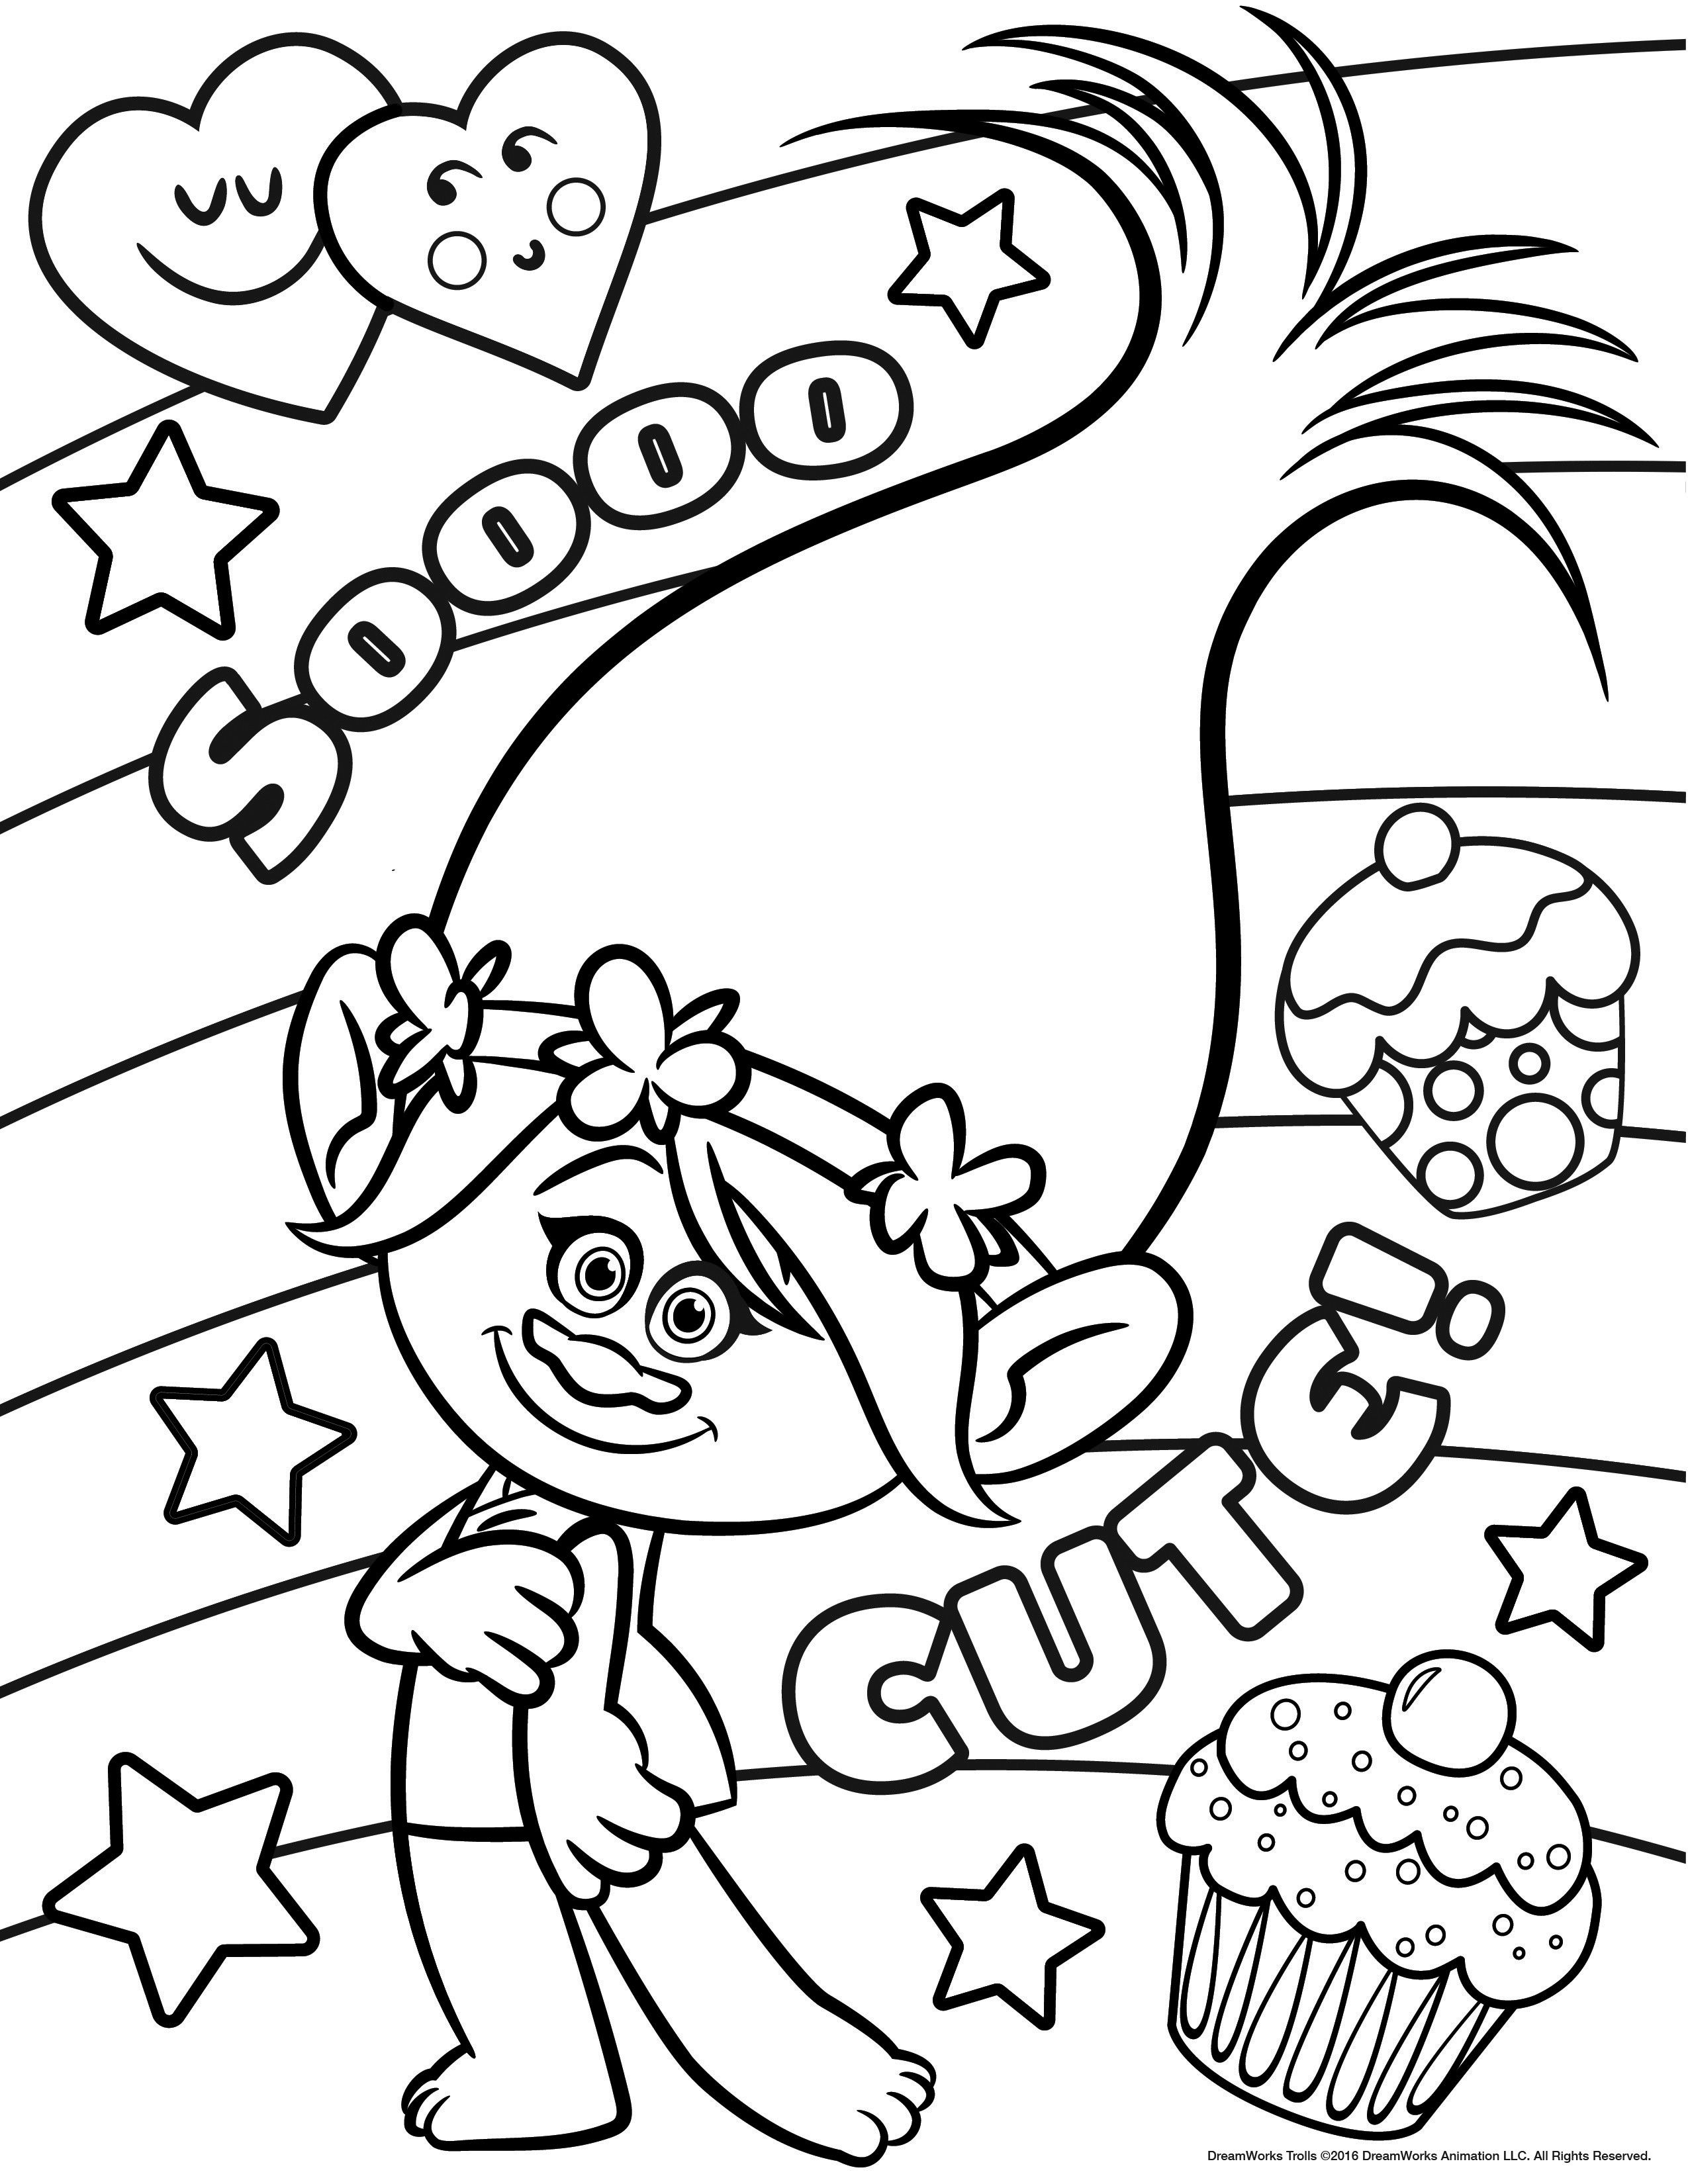 Printable coloring pages trolls - Explore Coloring Pages Dreamworks And More